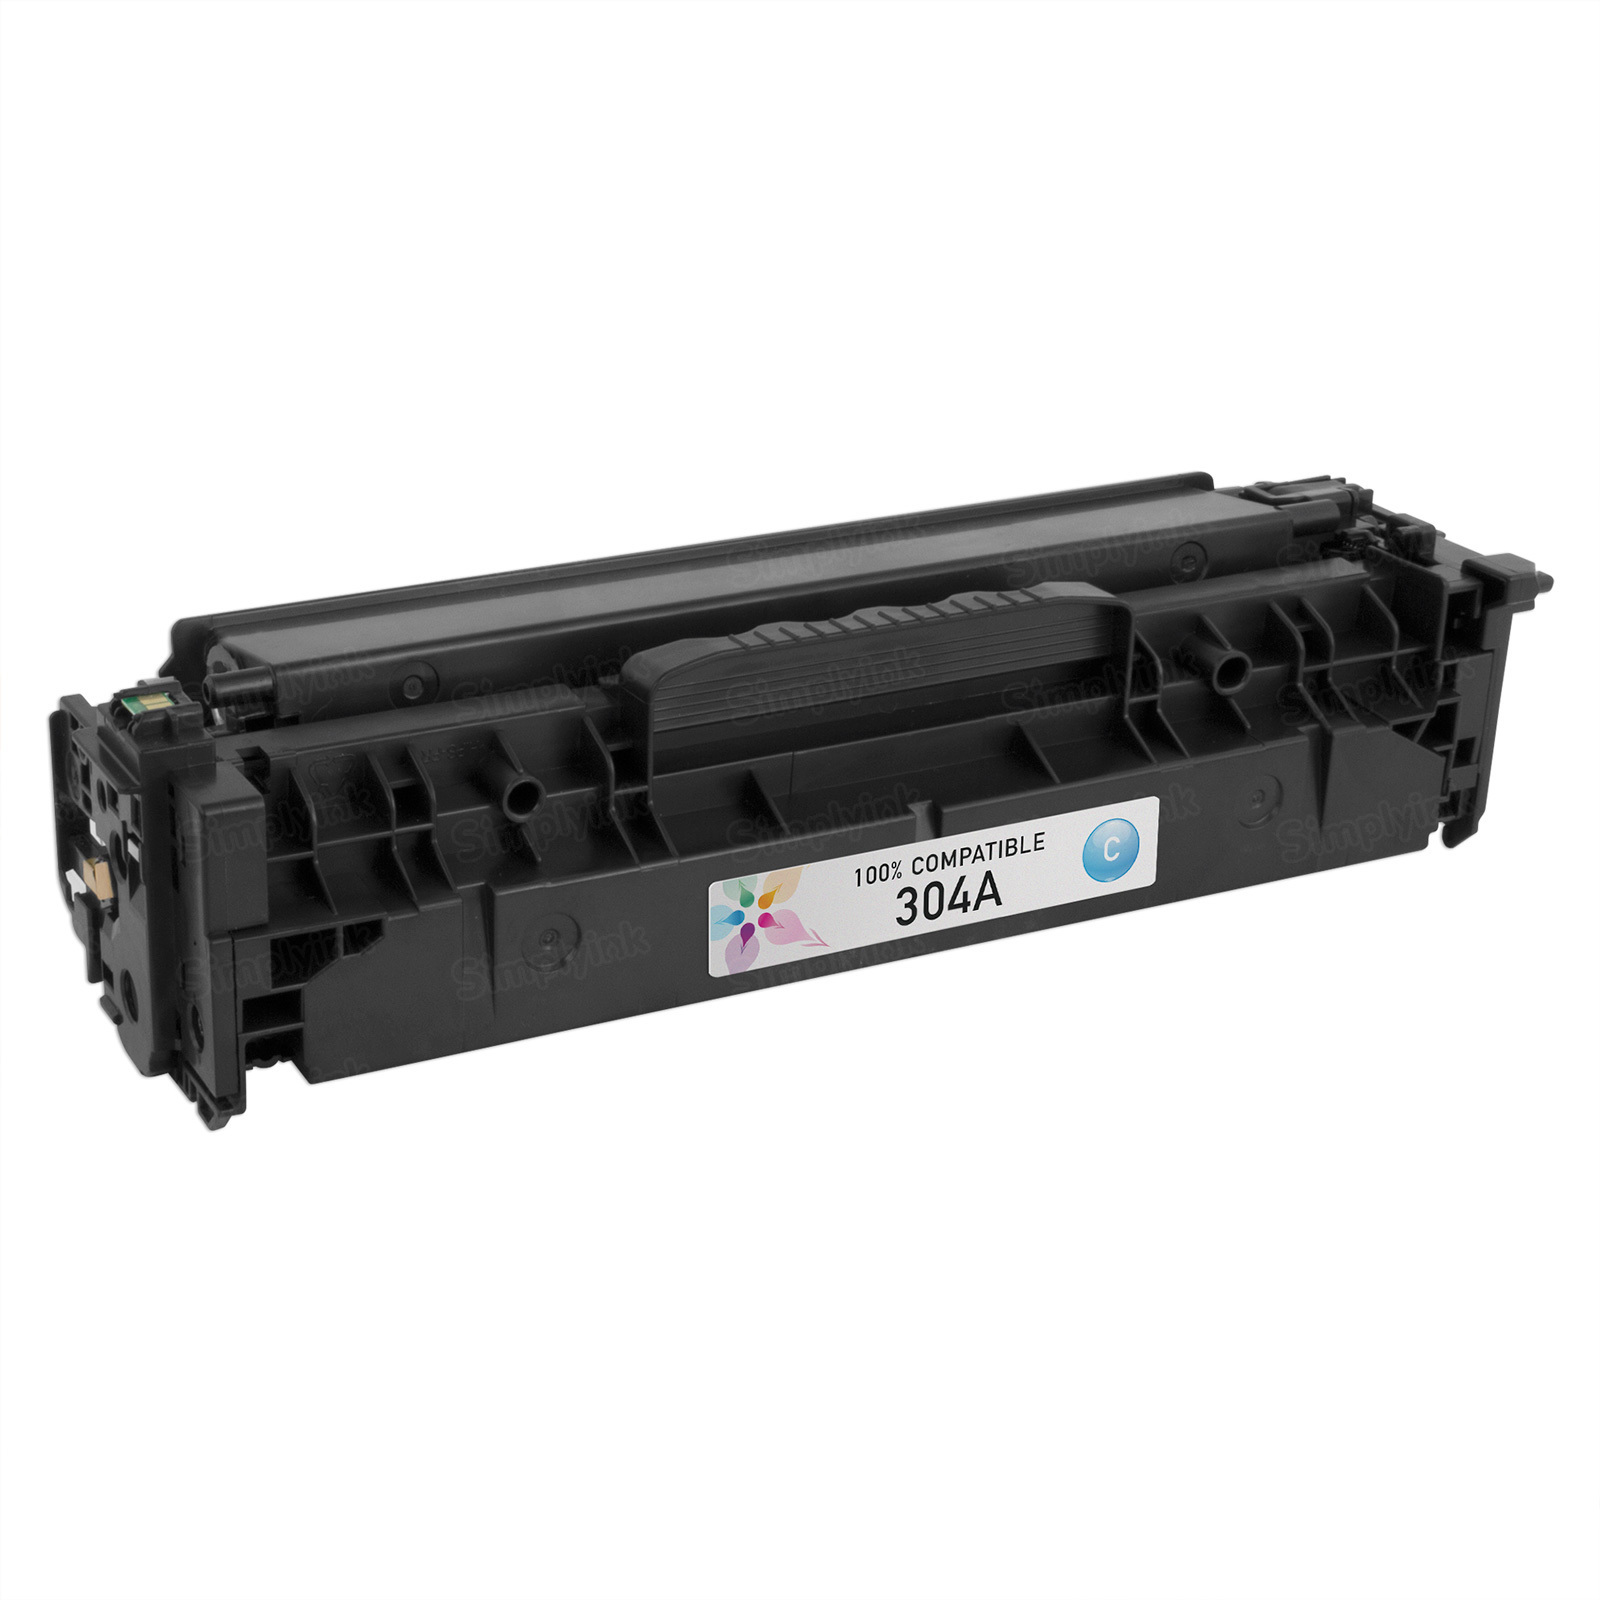 Replacement Cyan Toner for HP 304A